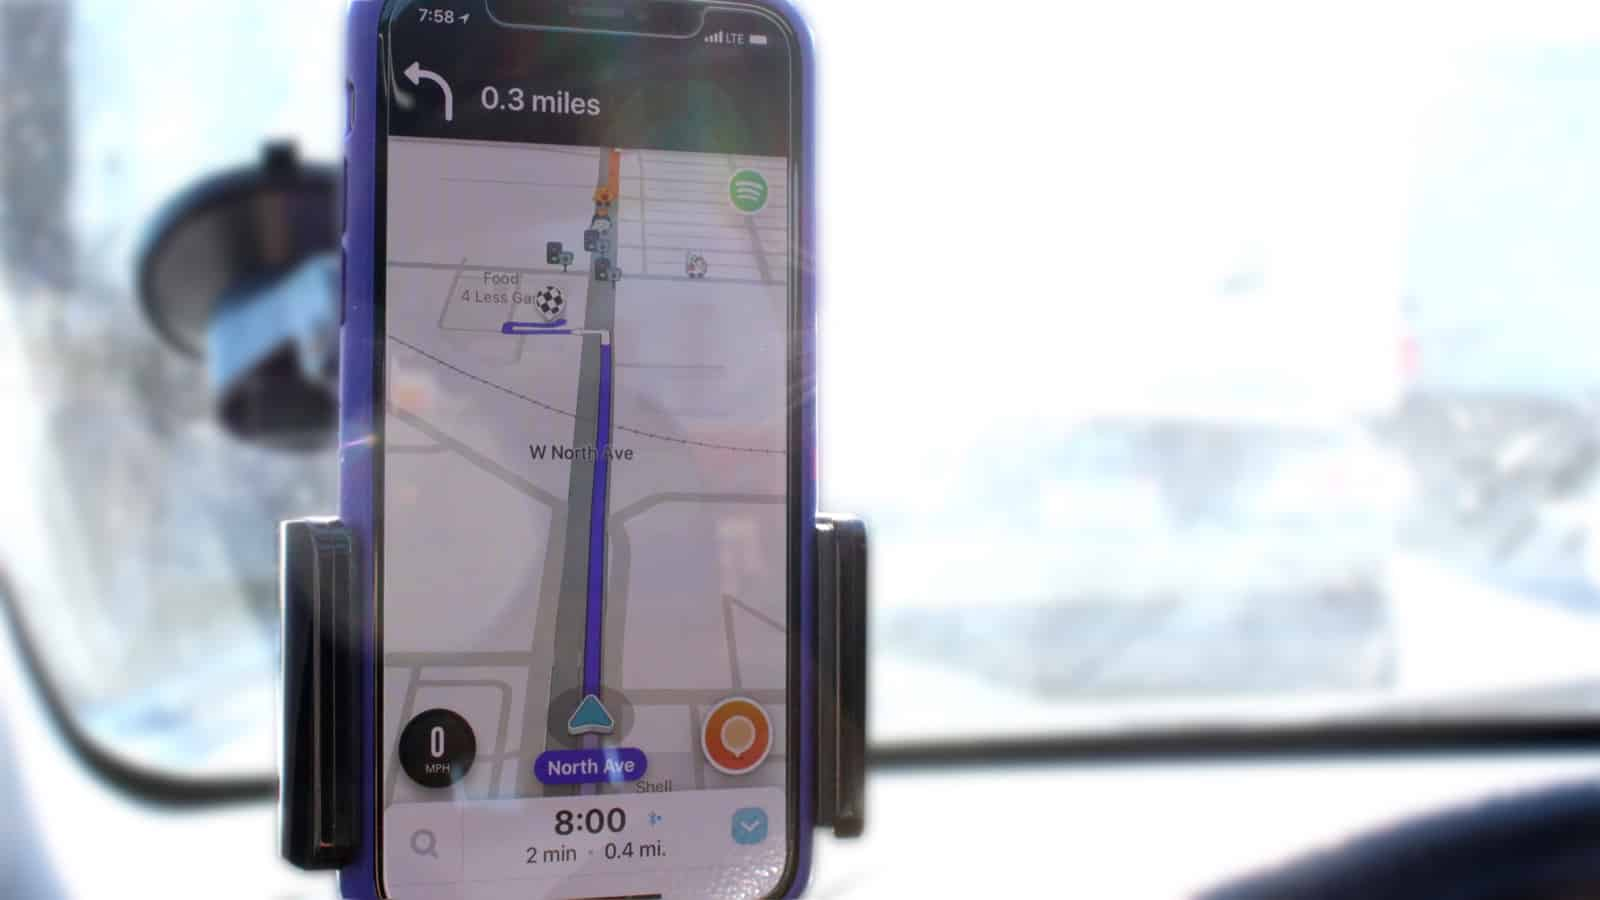 Waze on iPhone in a car GPS mount